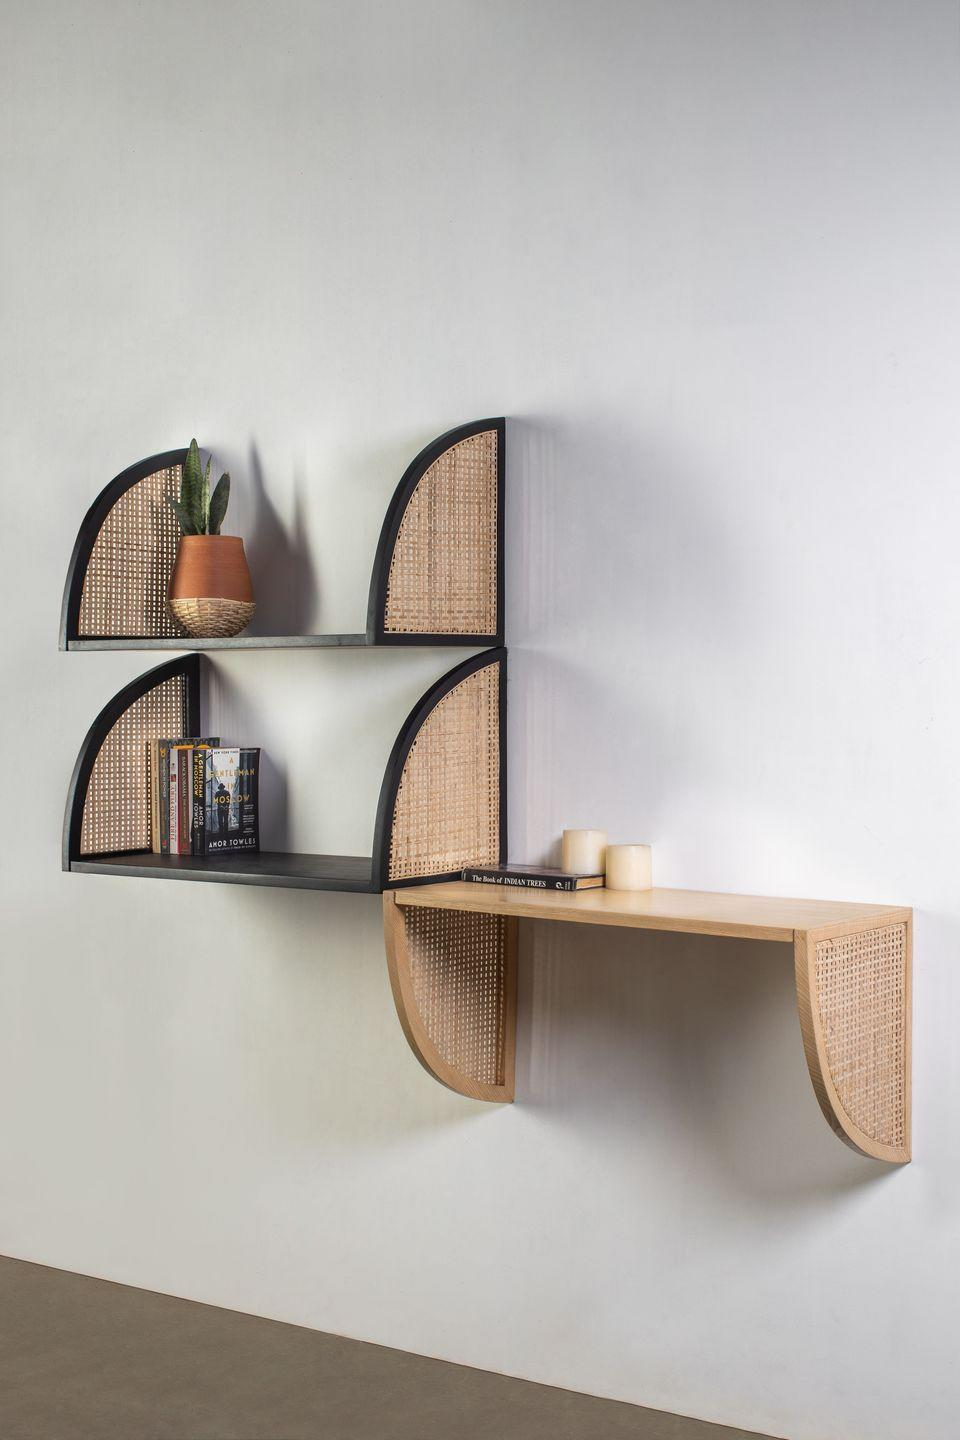 """<p>Picking up where its 2019 debut collection left off, Kam Ce Kam's latest pieces employ traditional Indian craftsmanship to contemporary effect. Black and natural ash-framed rattan takes a starring role in the form of the 'Aaram' reversible shelves, lending spaces an airy feel. From £270, <a href=""""https://kamcekam.com/"""" rel=""""nofollow noopener"""" target=""""_blank"""" data-ylk=""""slk:kamcekam.com"""" class=""""link rapid-noclick-resp"""">kamcekam.com</a></p>"""